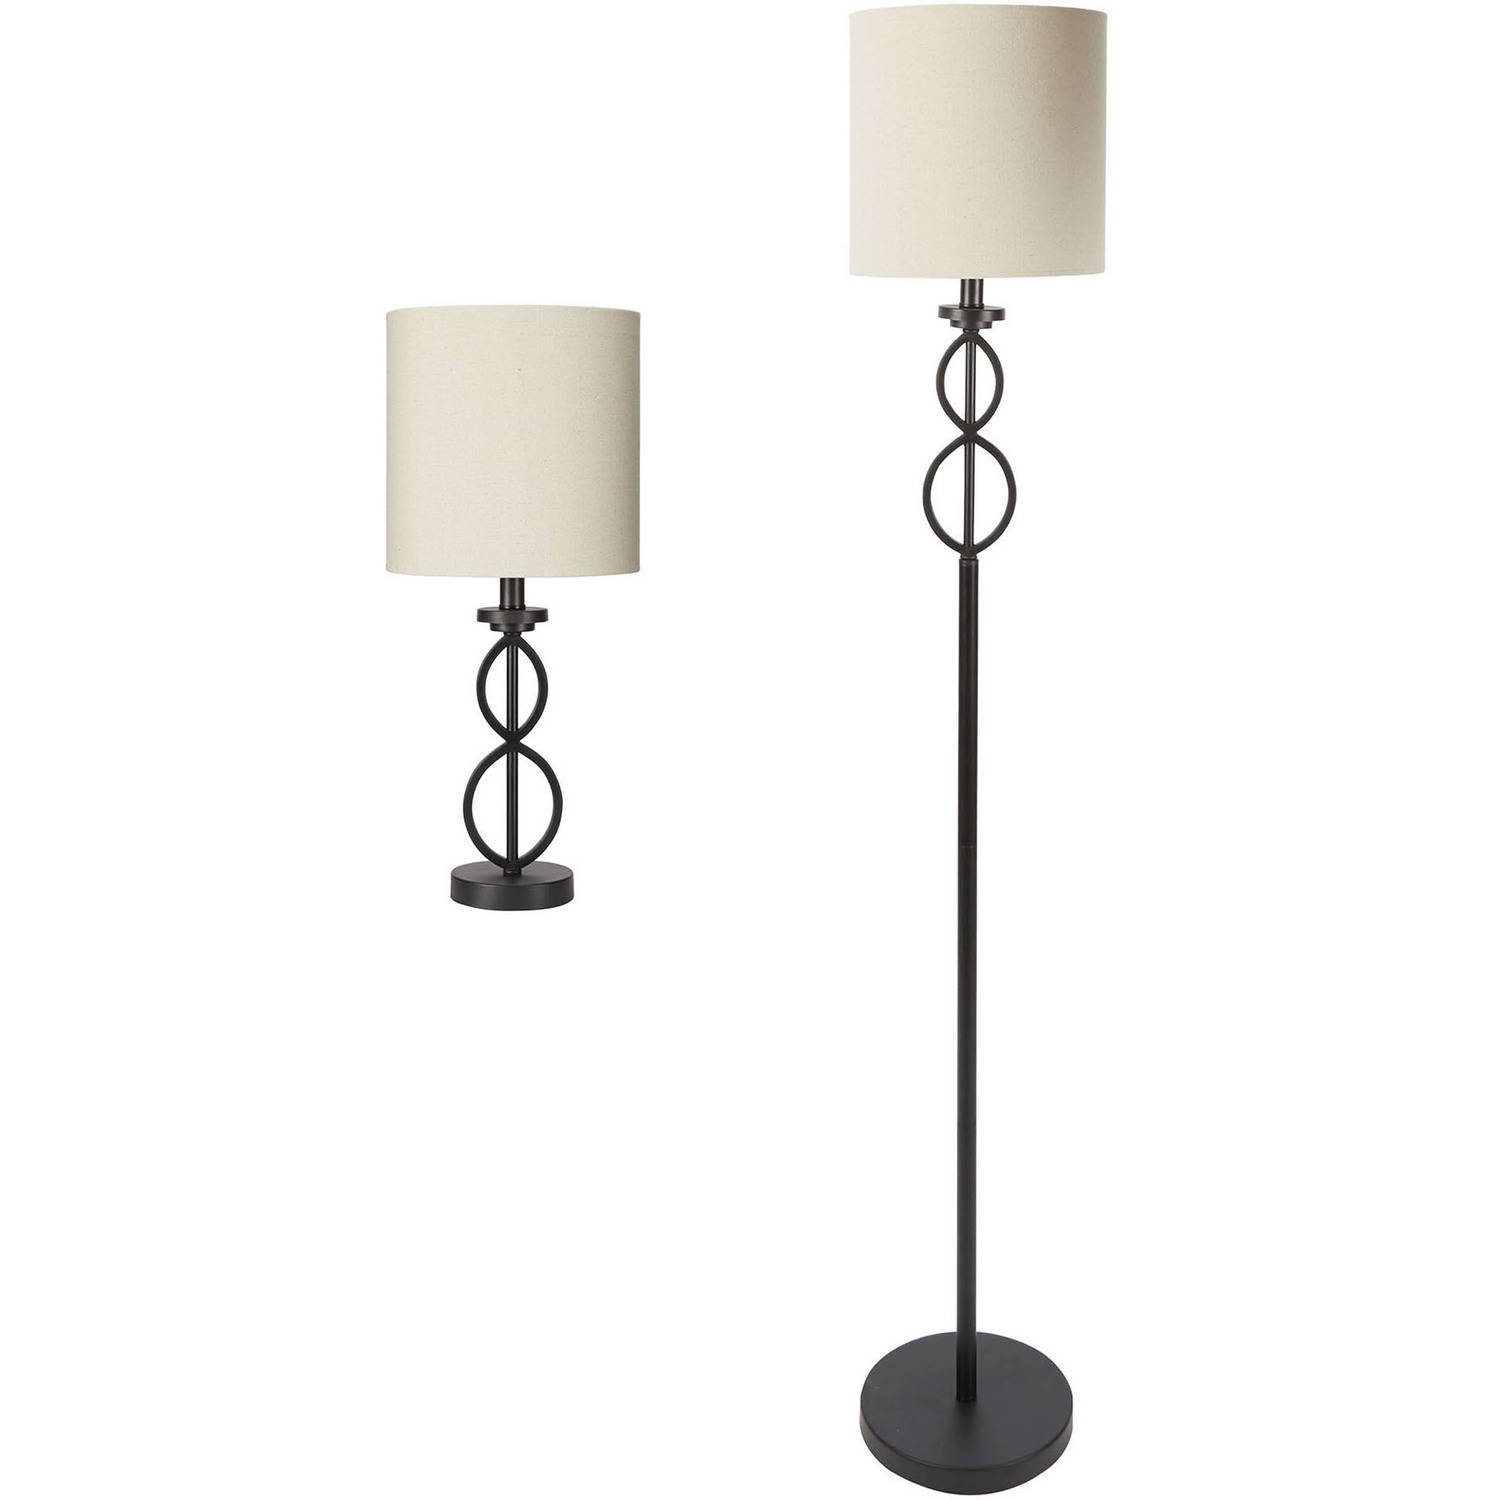 Mainstays Table And Floor Lamp Set Black Matte Finish Walmart Com